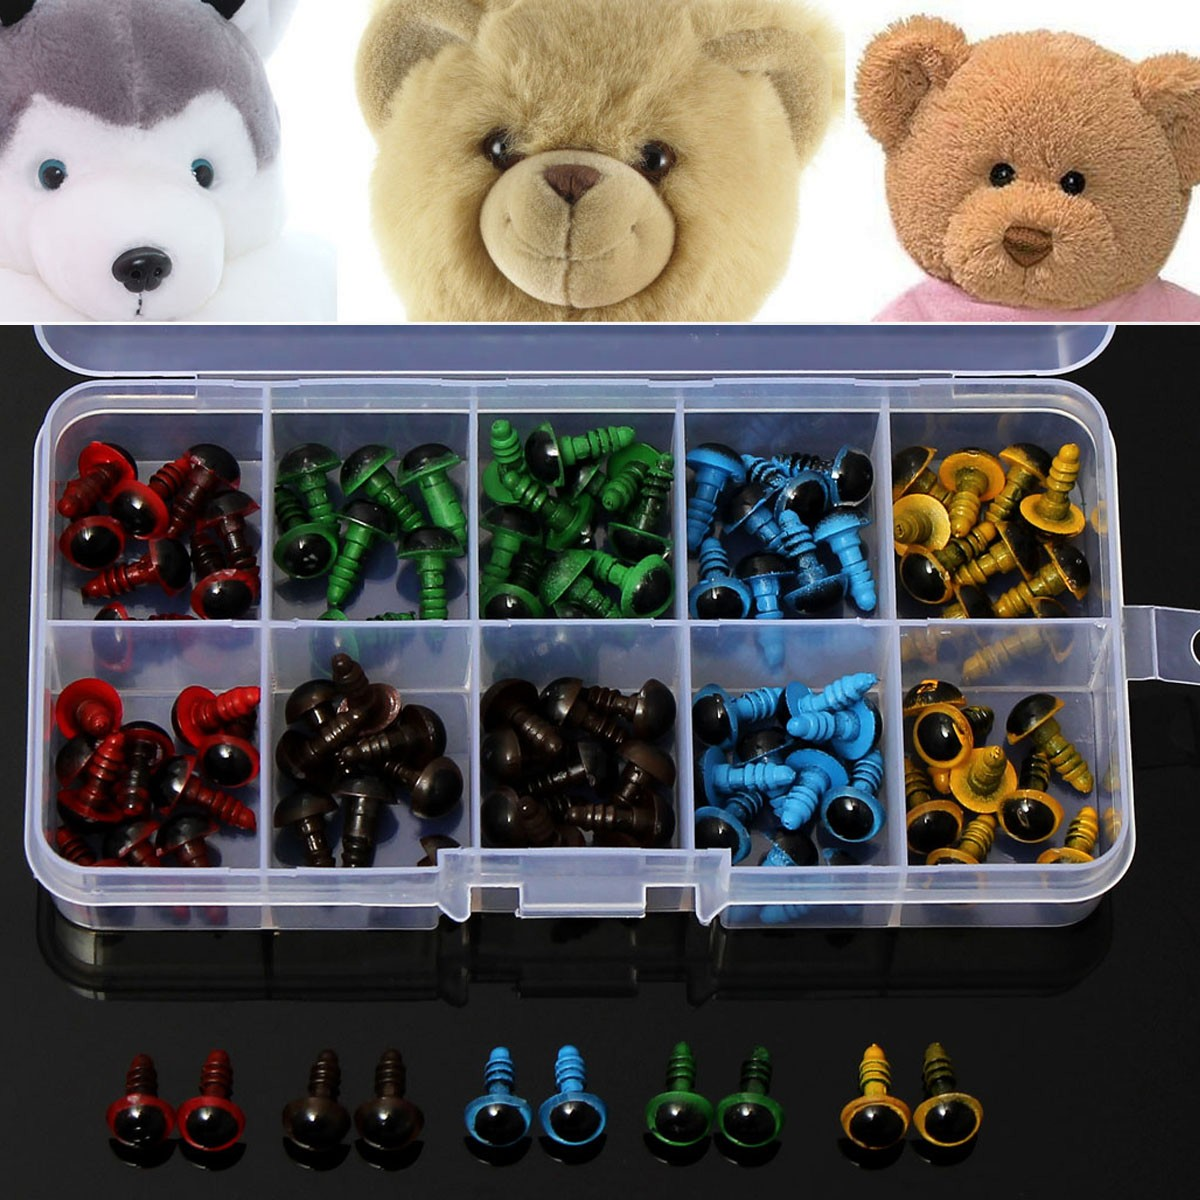 Buy 108mm 5 Colors Washers Plastic Safety Eyes Teddy Bear Doll Puppets Toys Handmade Craft DIY Tool